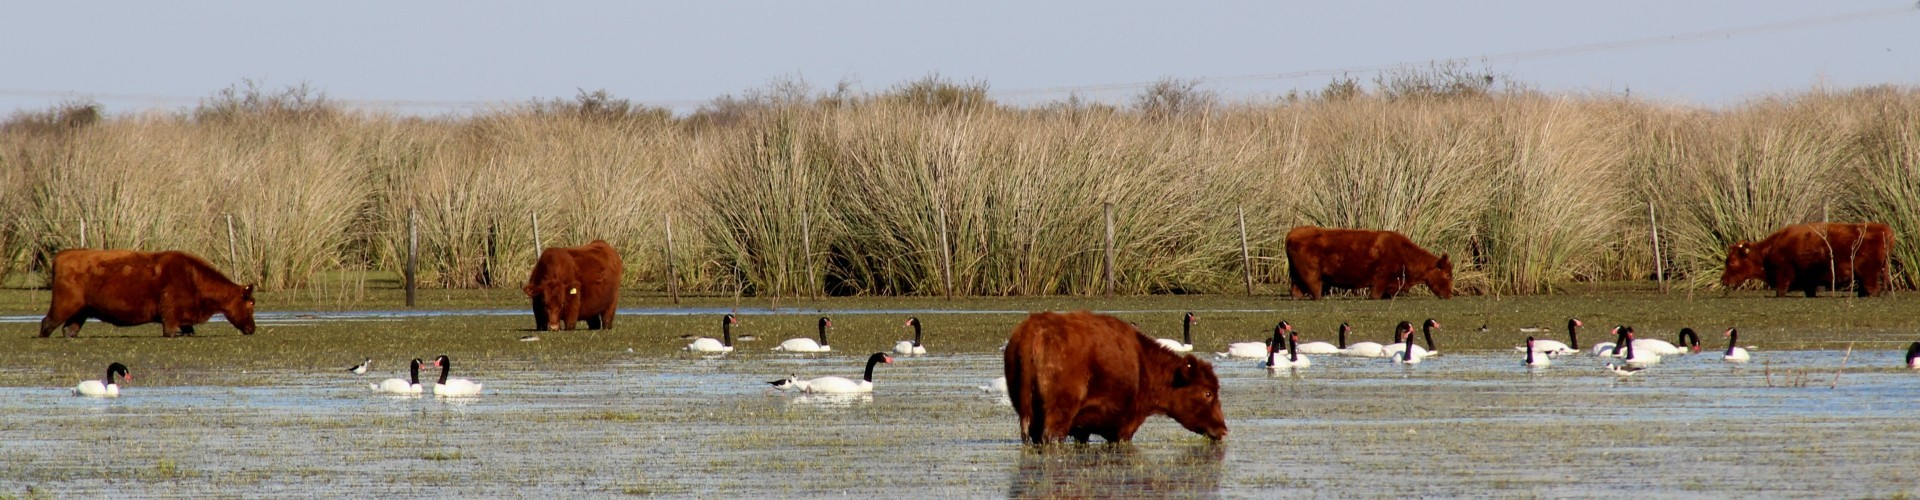 Cattle and birds in the water near an island in the Parana Delta. A photo by Ruben Quintana